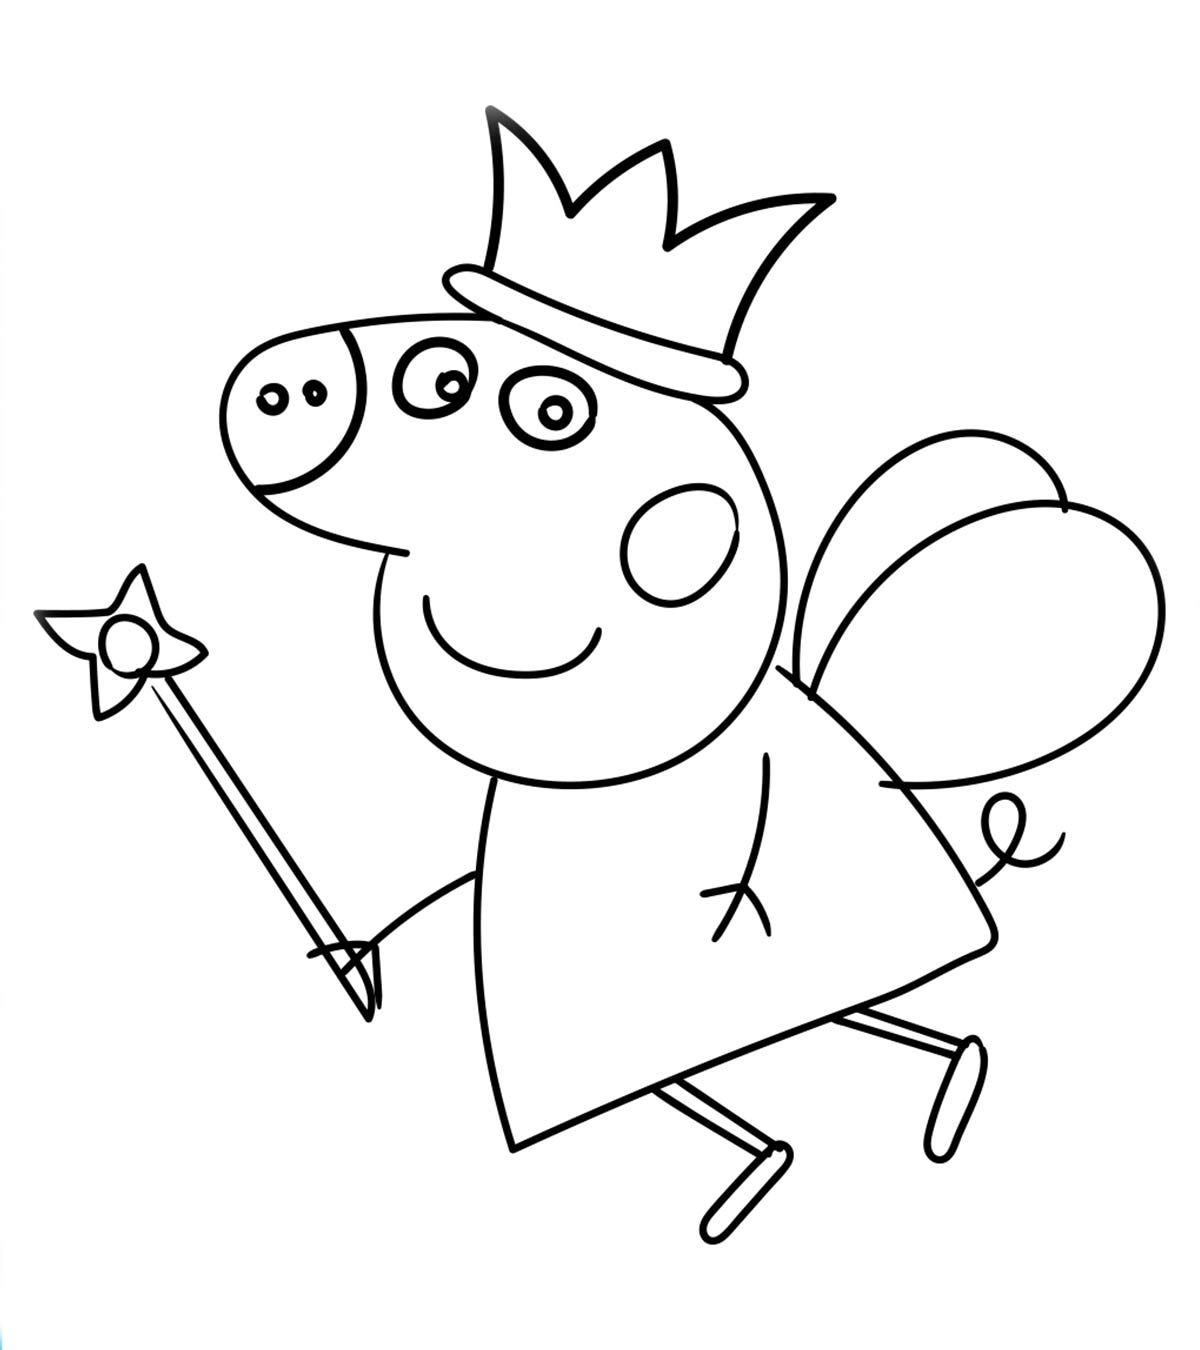 Peppa Pig Coloring Pages Top 35 Peppa Pig Coloring Pages For Your Little Ones 1 Ausmalbilder Malvorlage Prinzessin Malvorlagen Tiere